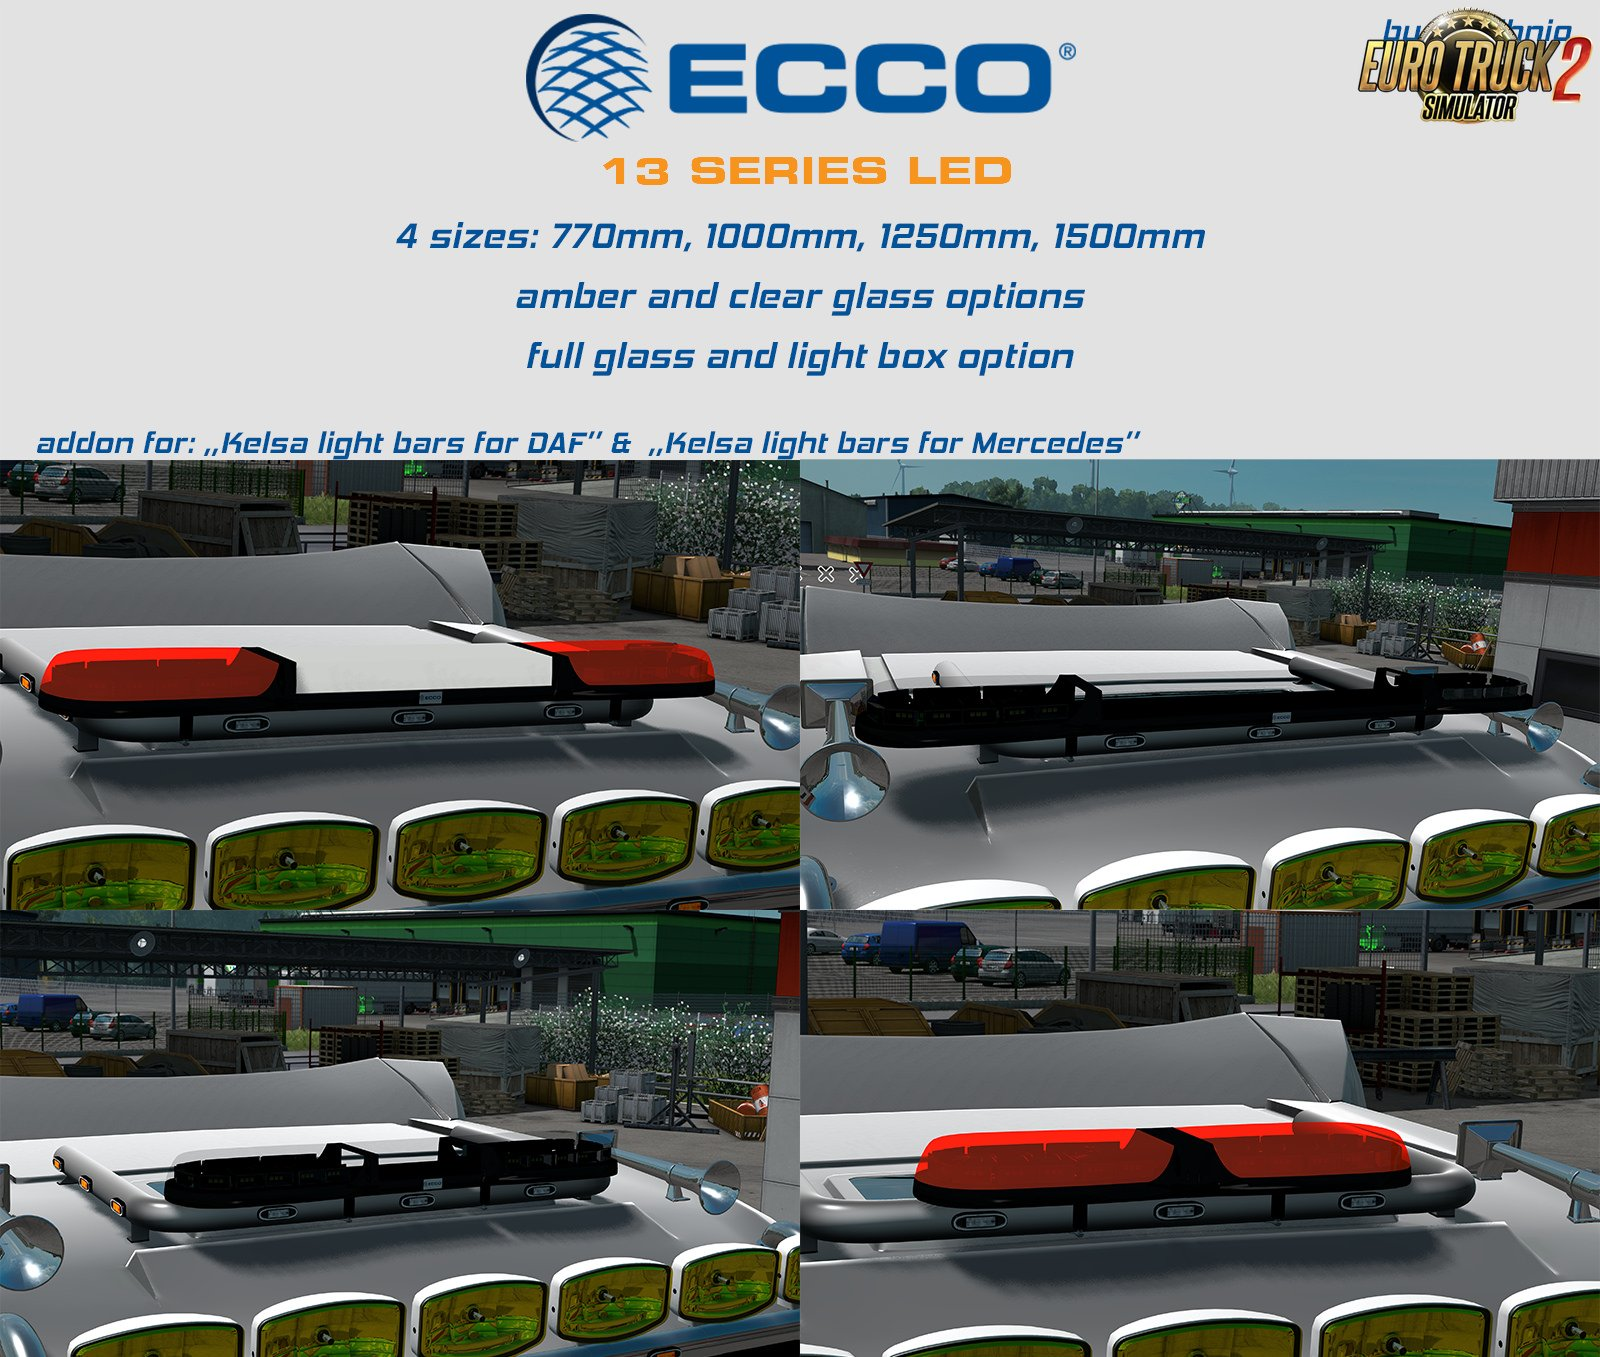 Ecco beacon bars add-on for: Kelsa lightbar packs by obelihnio v1.02